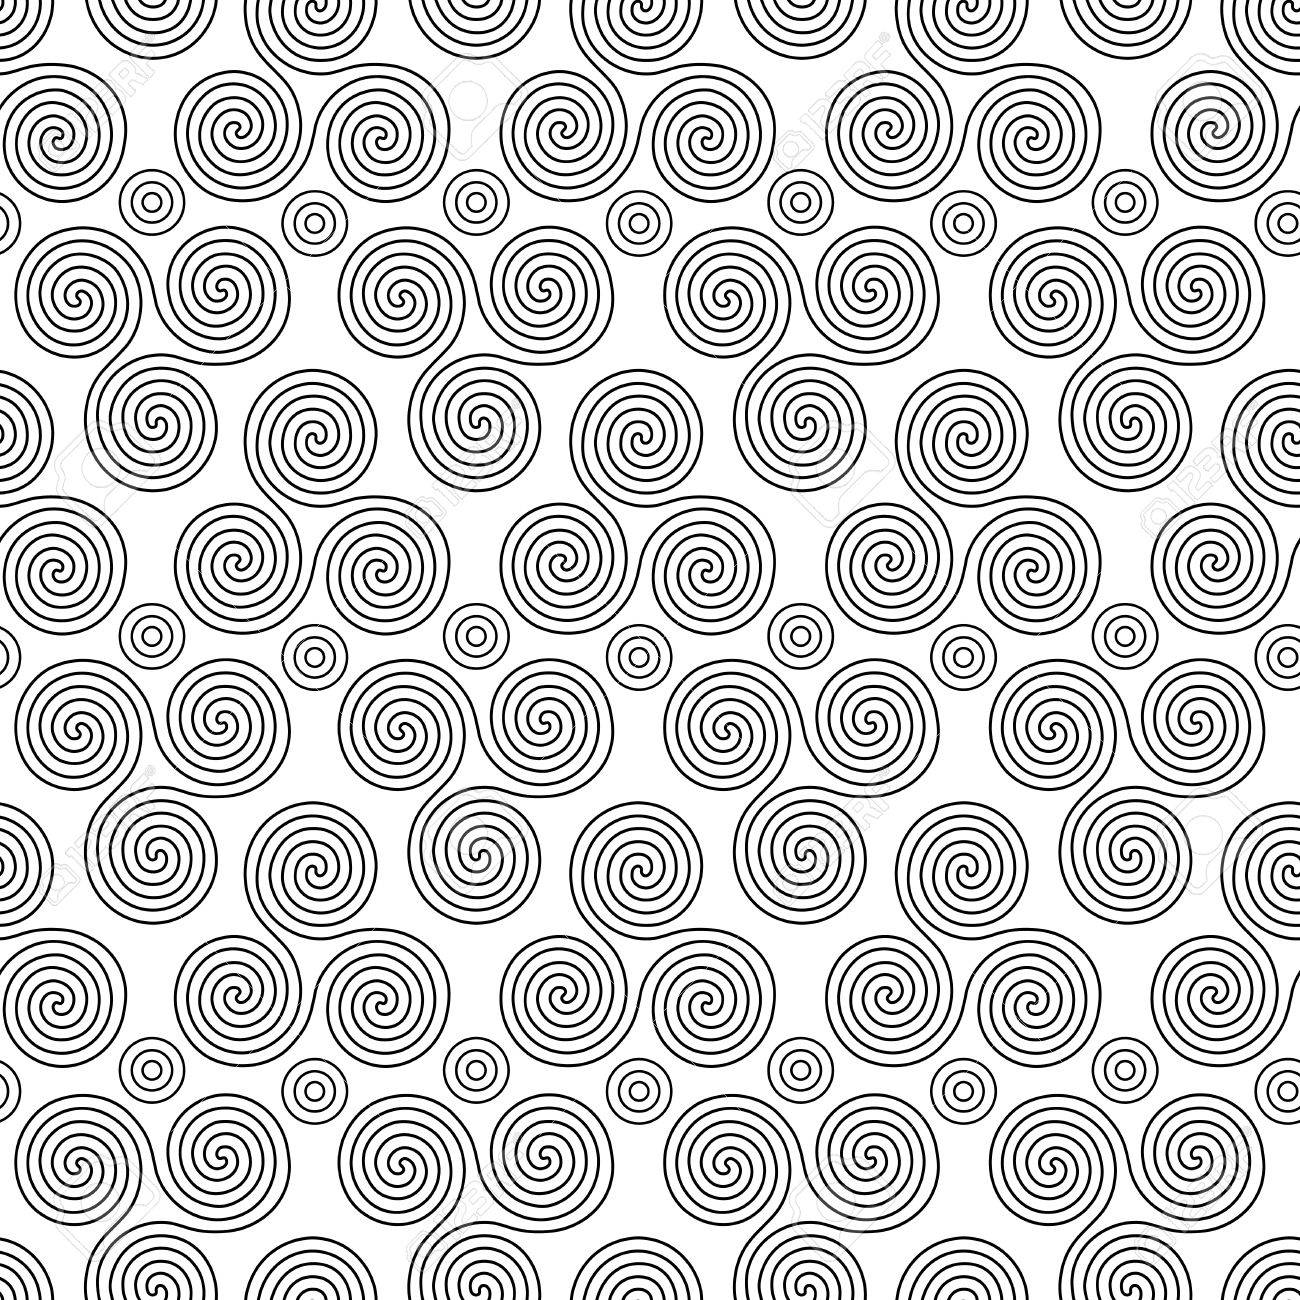 Seamless vector pattern with circles and swirling triple spiral seamless vector pattern with circles and swirling triple spiral or triskele a complex ancient celtic buycottarizona Images